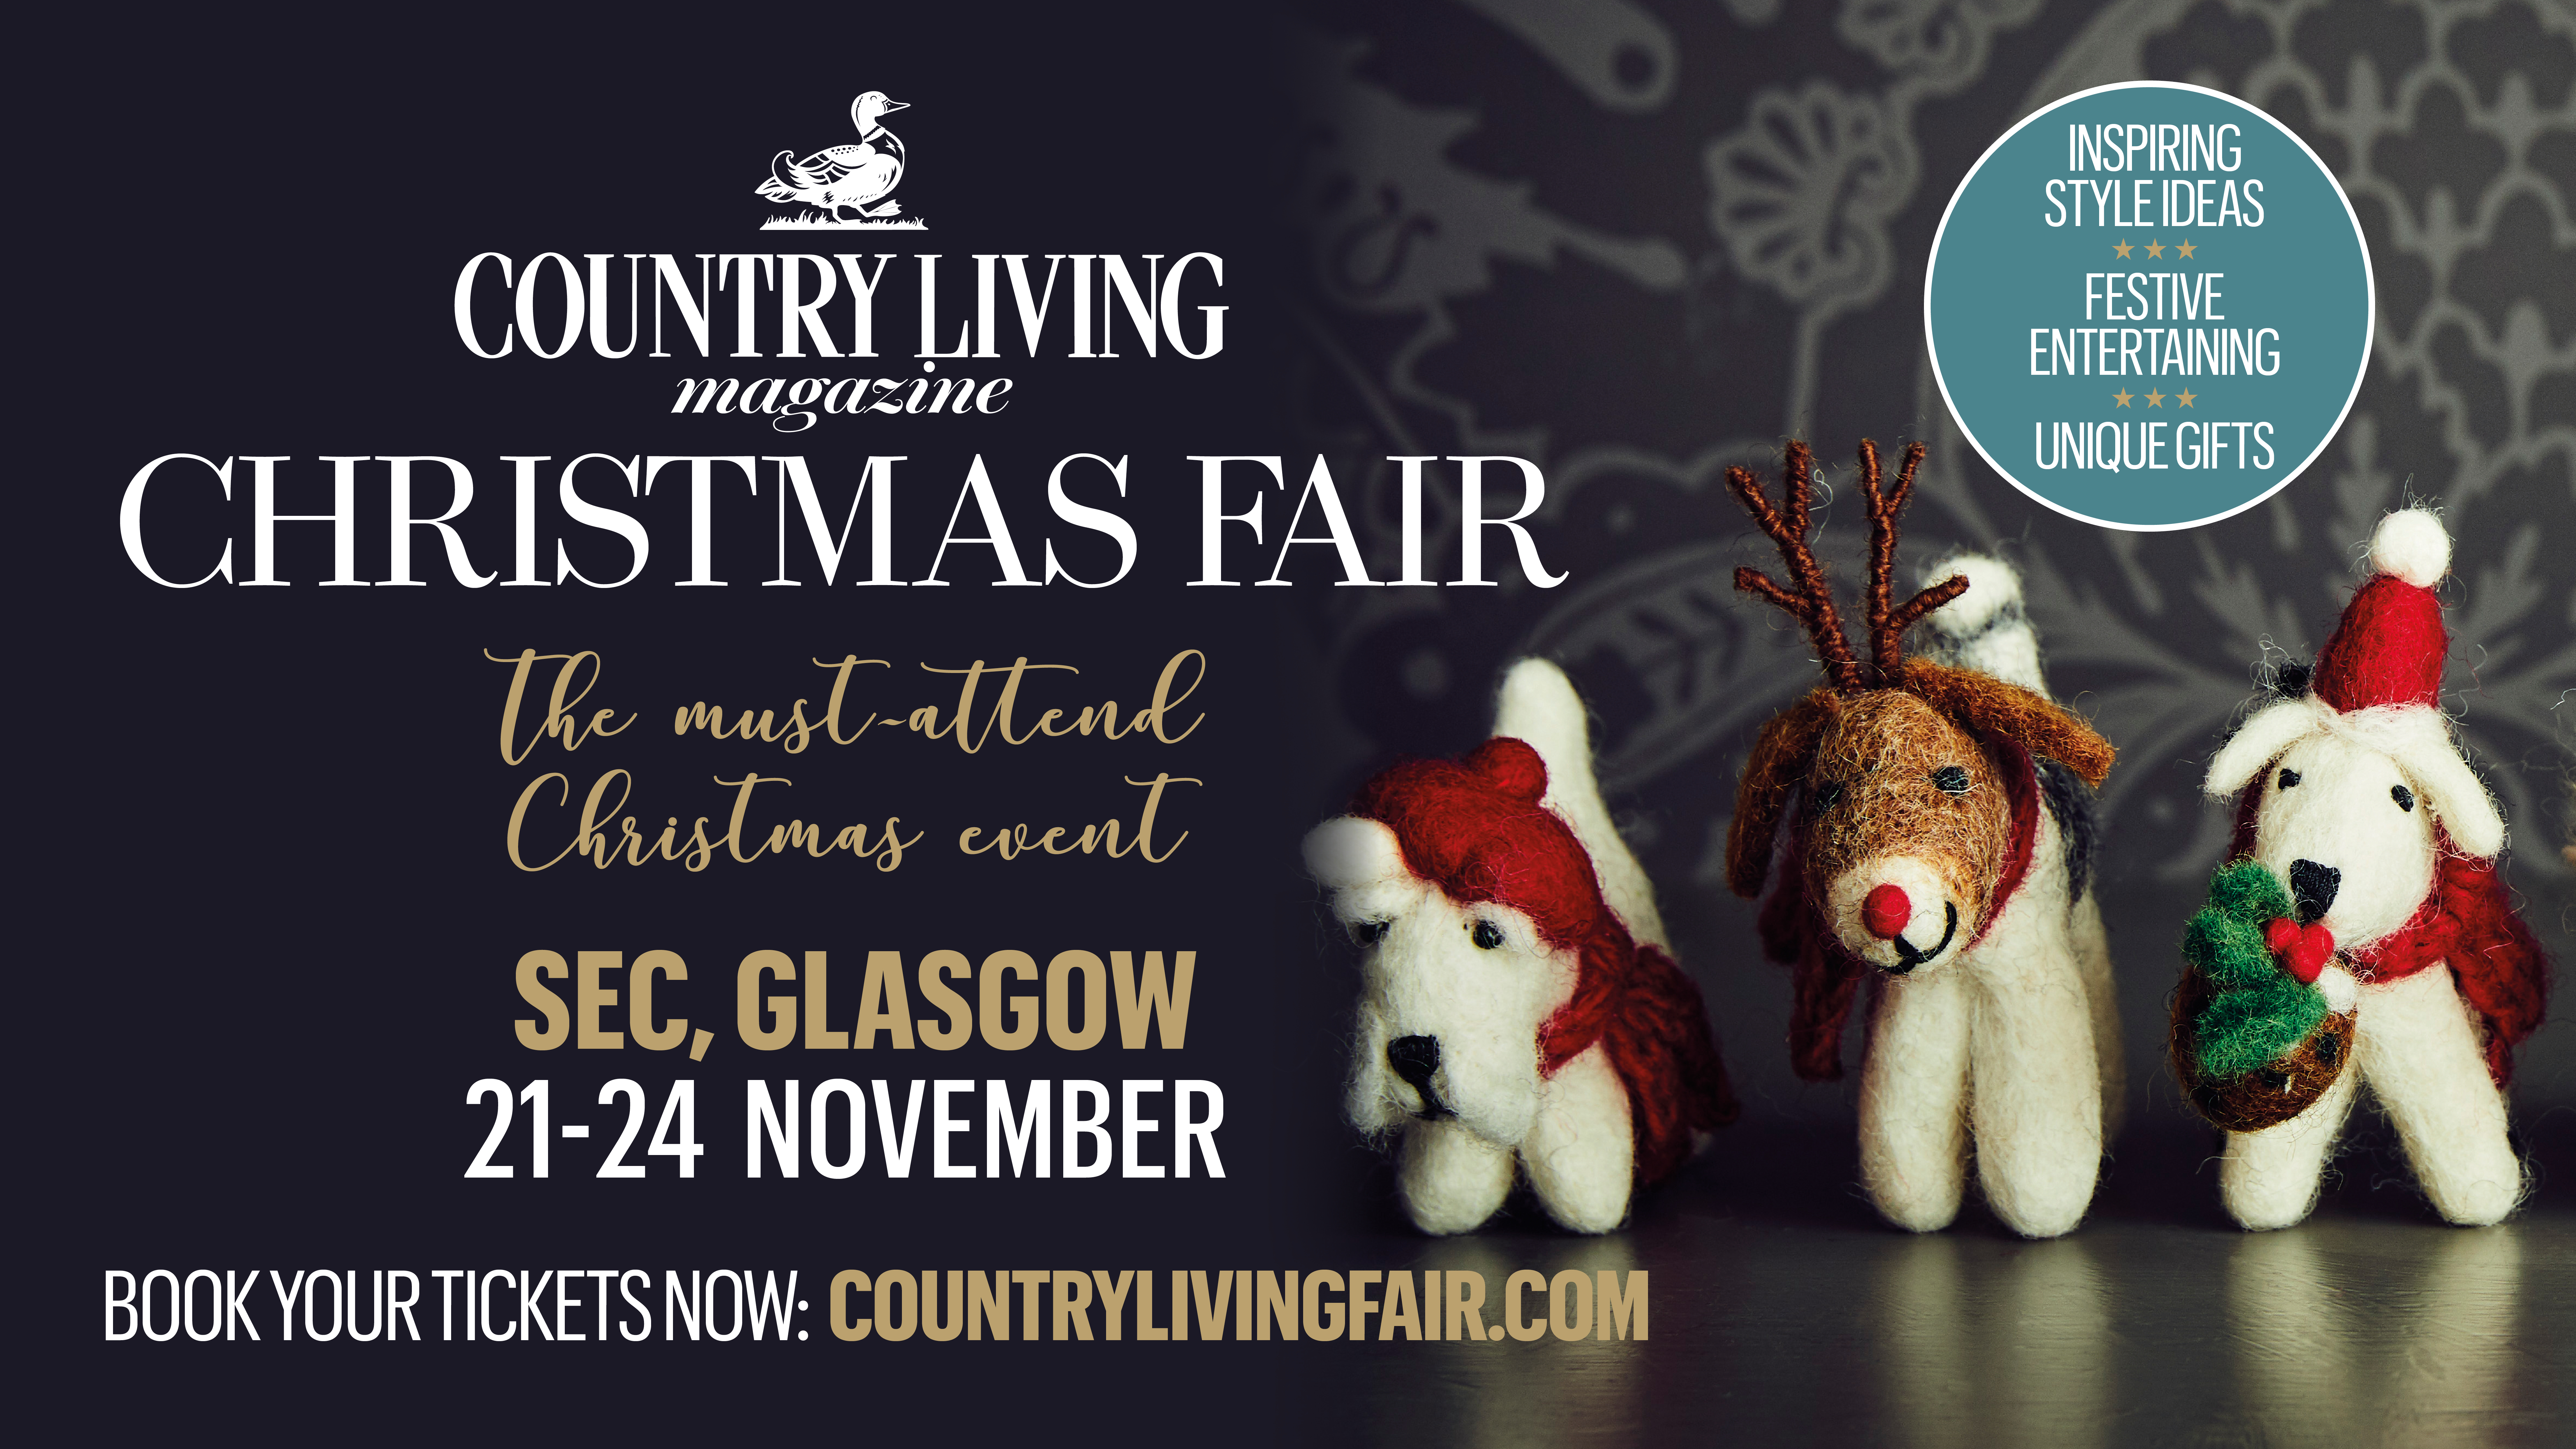 COUNTRY LIVING FAIR: POSTER